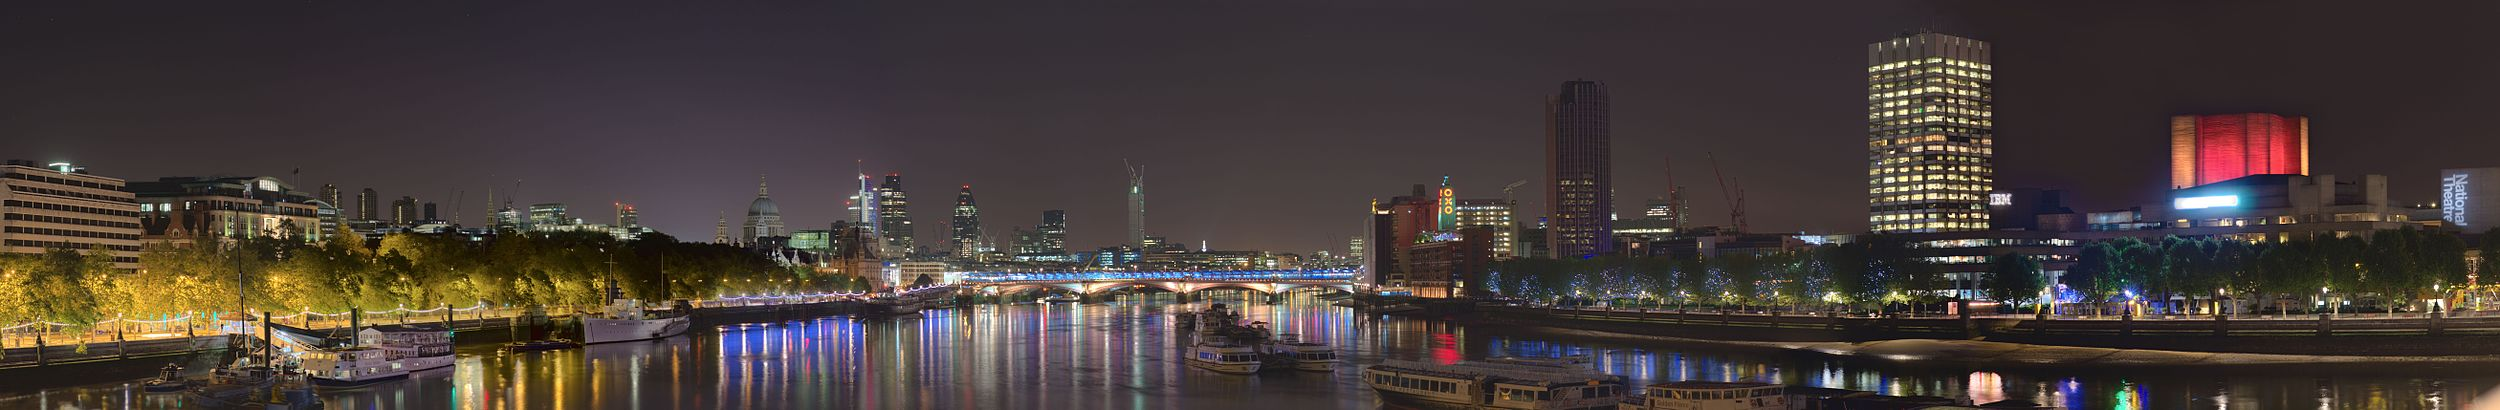 London's South Bank By Night.jpg